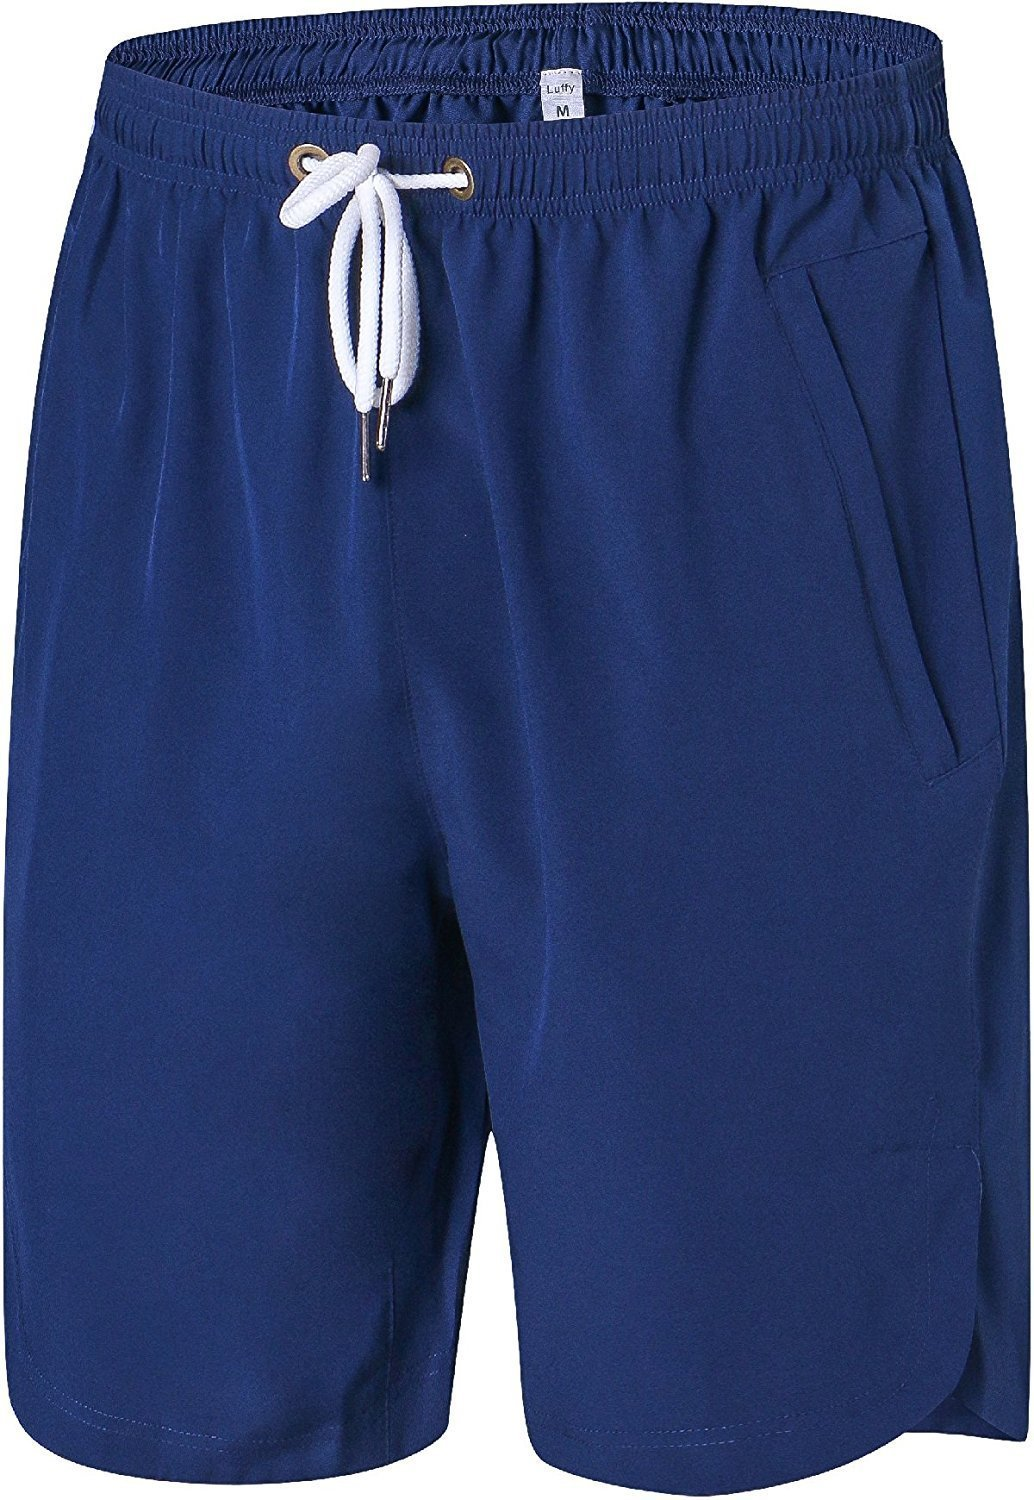 Luffy Mens Quick Dry Athletic Gym Shorts - Stretchable For Bodybuilding Running Workout Active Training Shorts (Navy, navy-XXXXL)